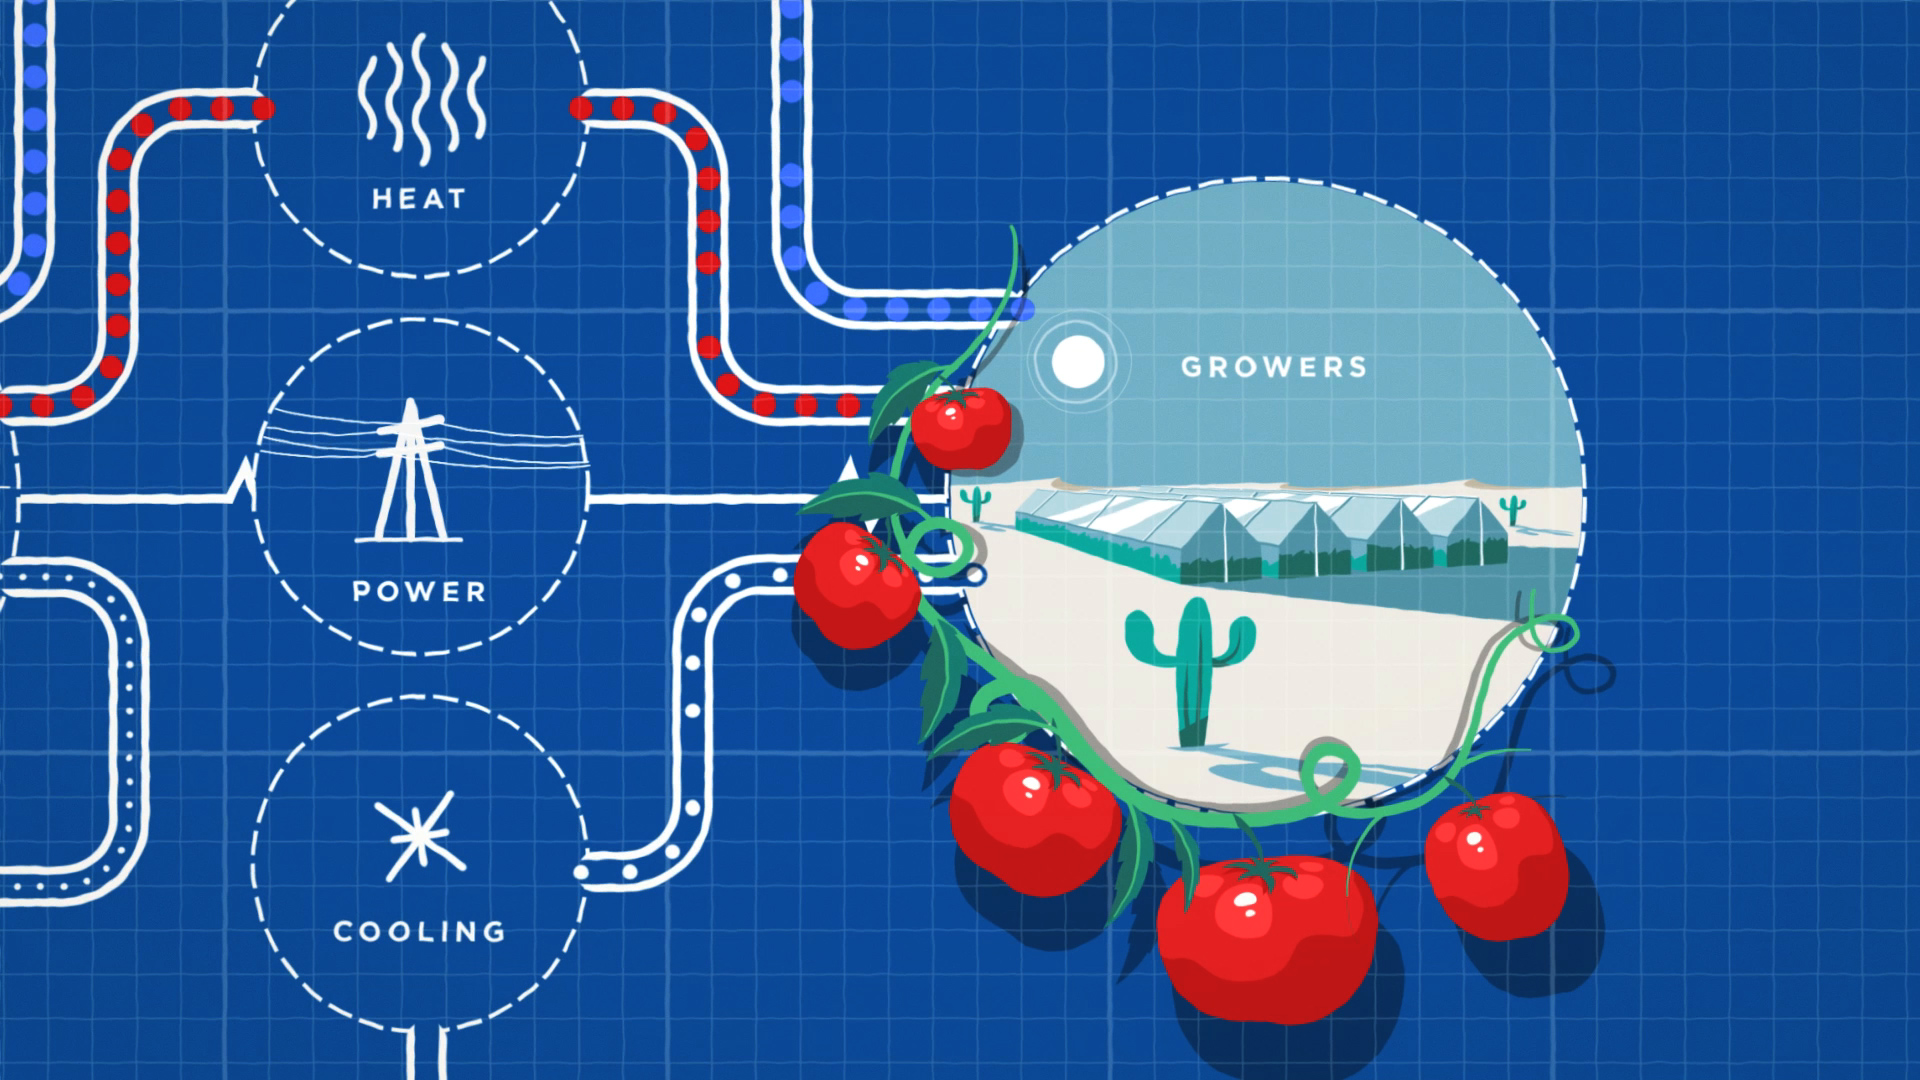 Sundrop Farms Animated Brand Film: still image taken from a diagramatic explainer section